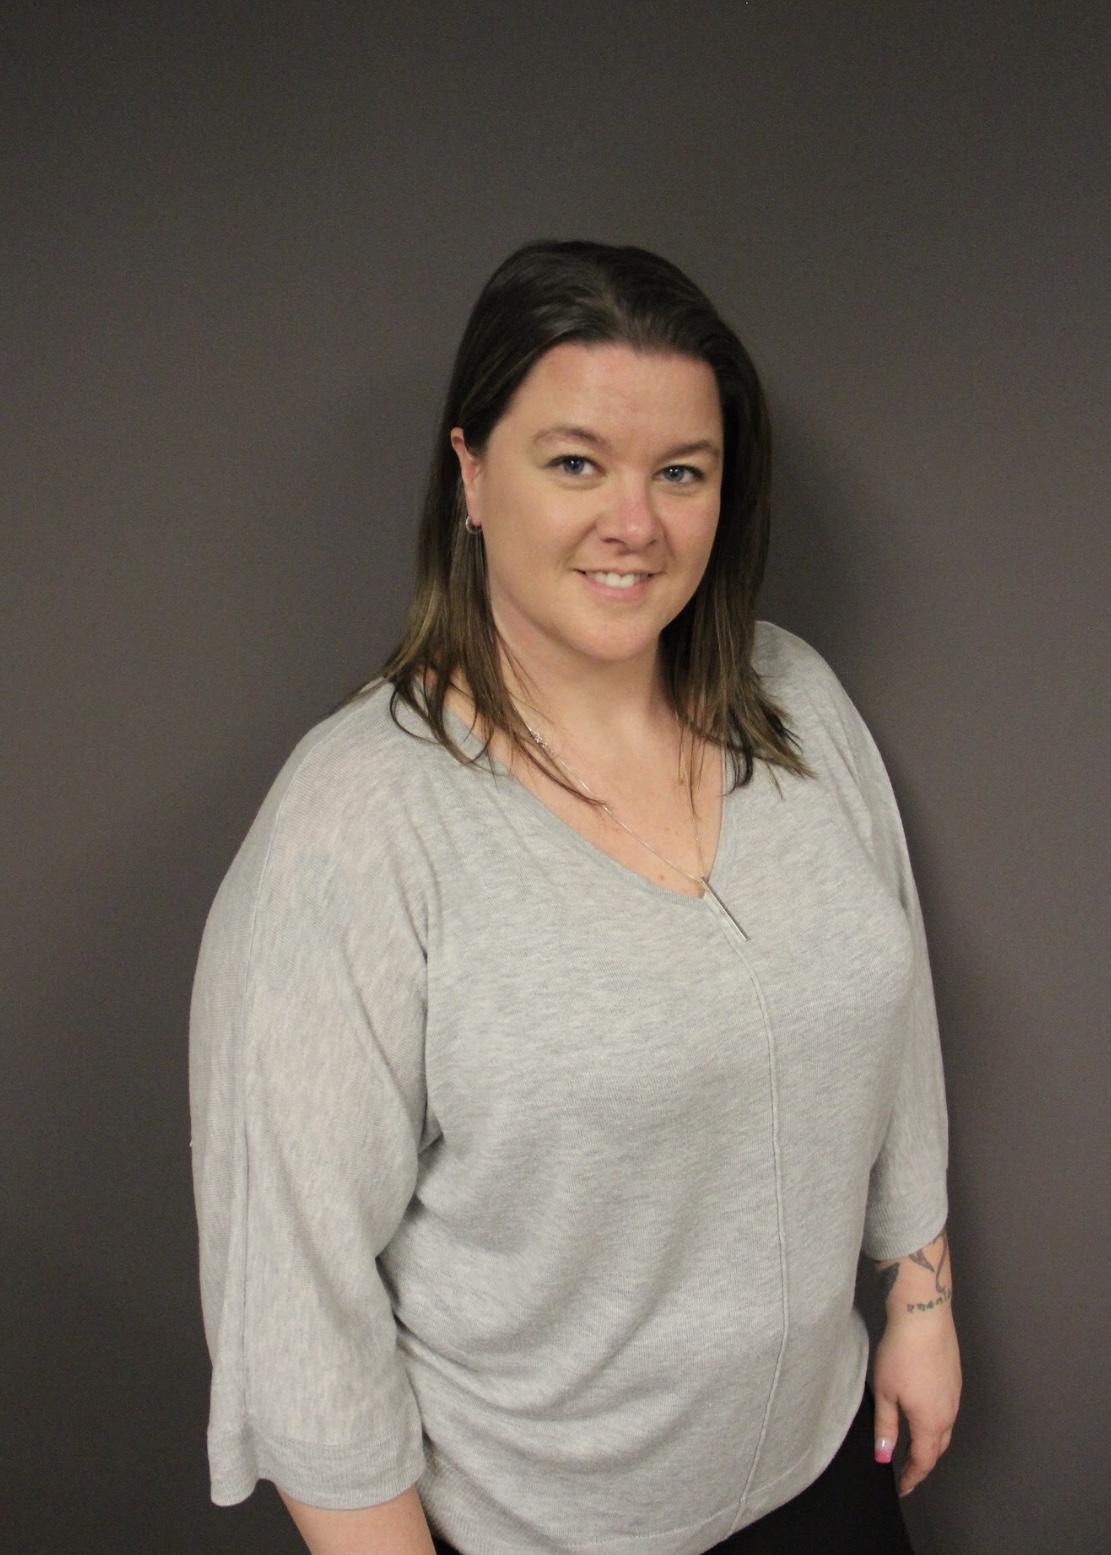 Kristine-Commercial Lines Account Manager